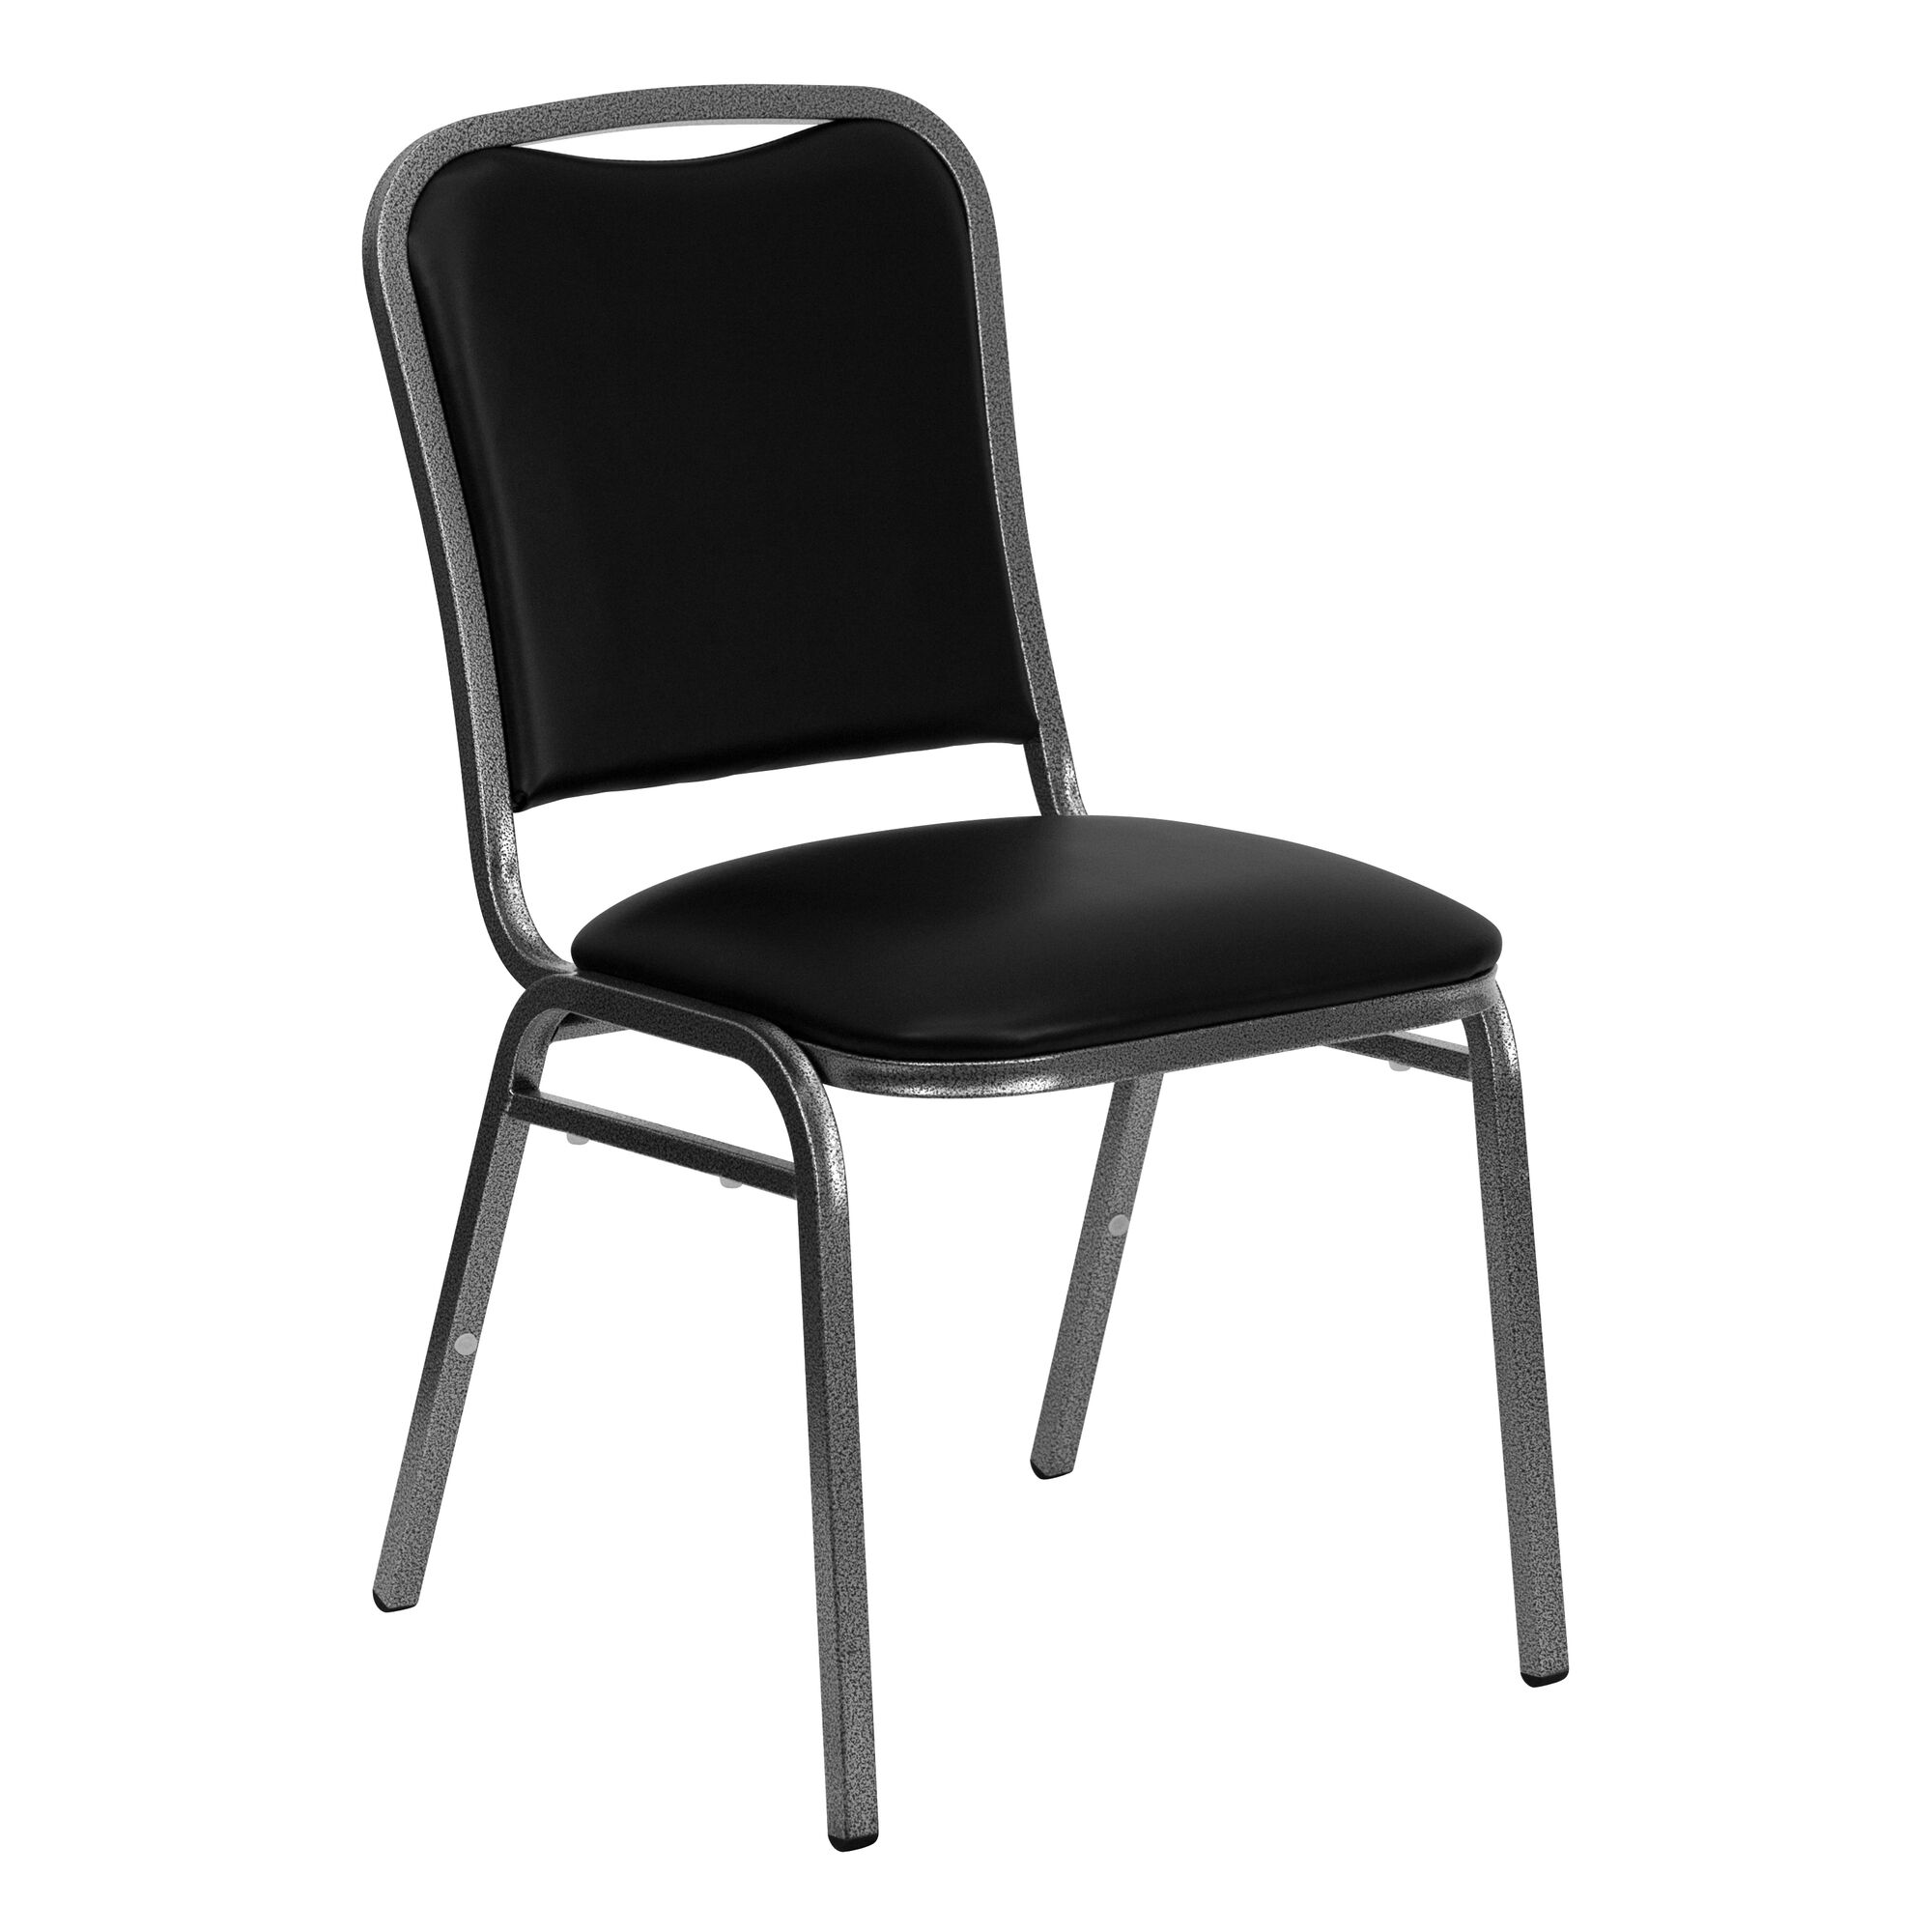 gold auctions of chairs able chair metal red stack image banquet padded